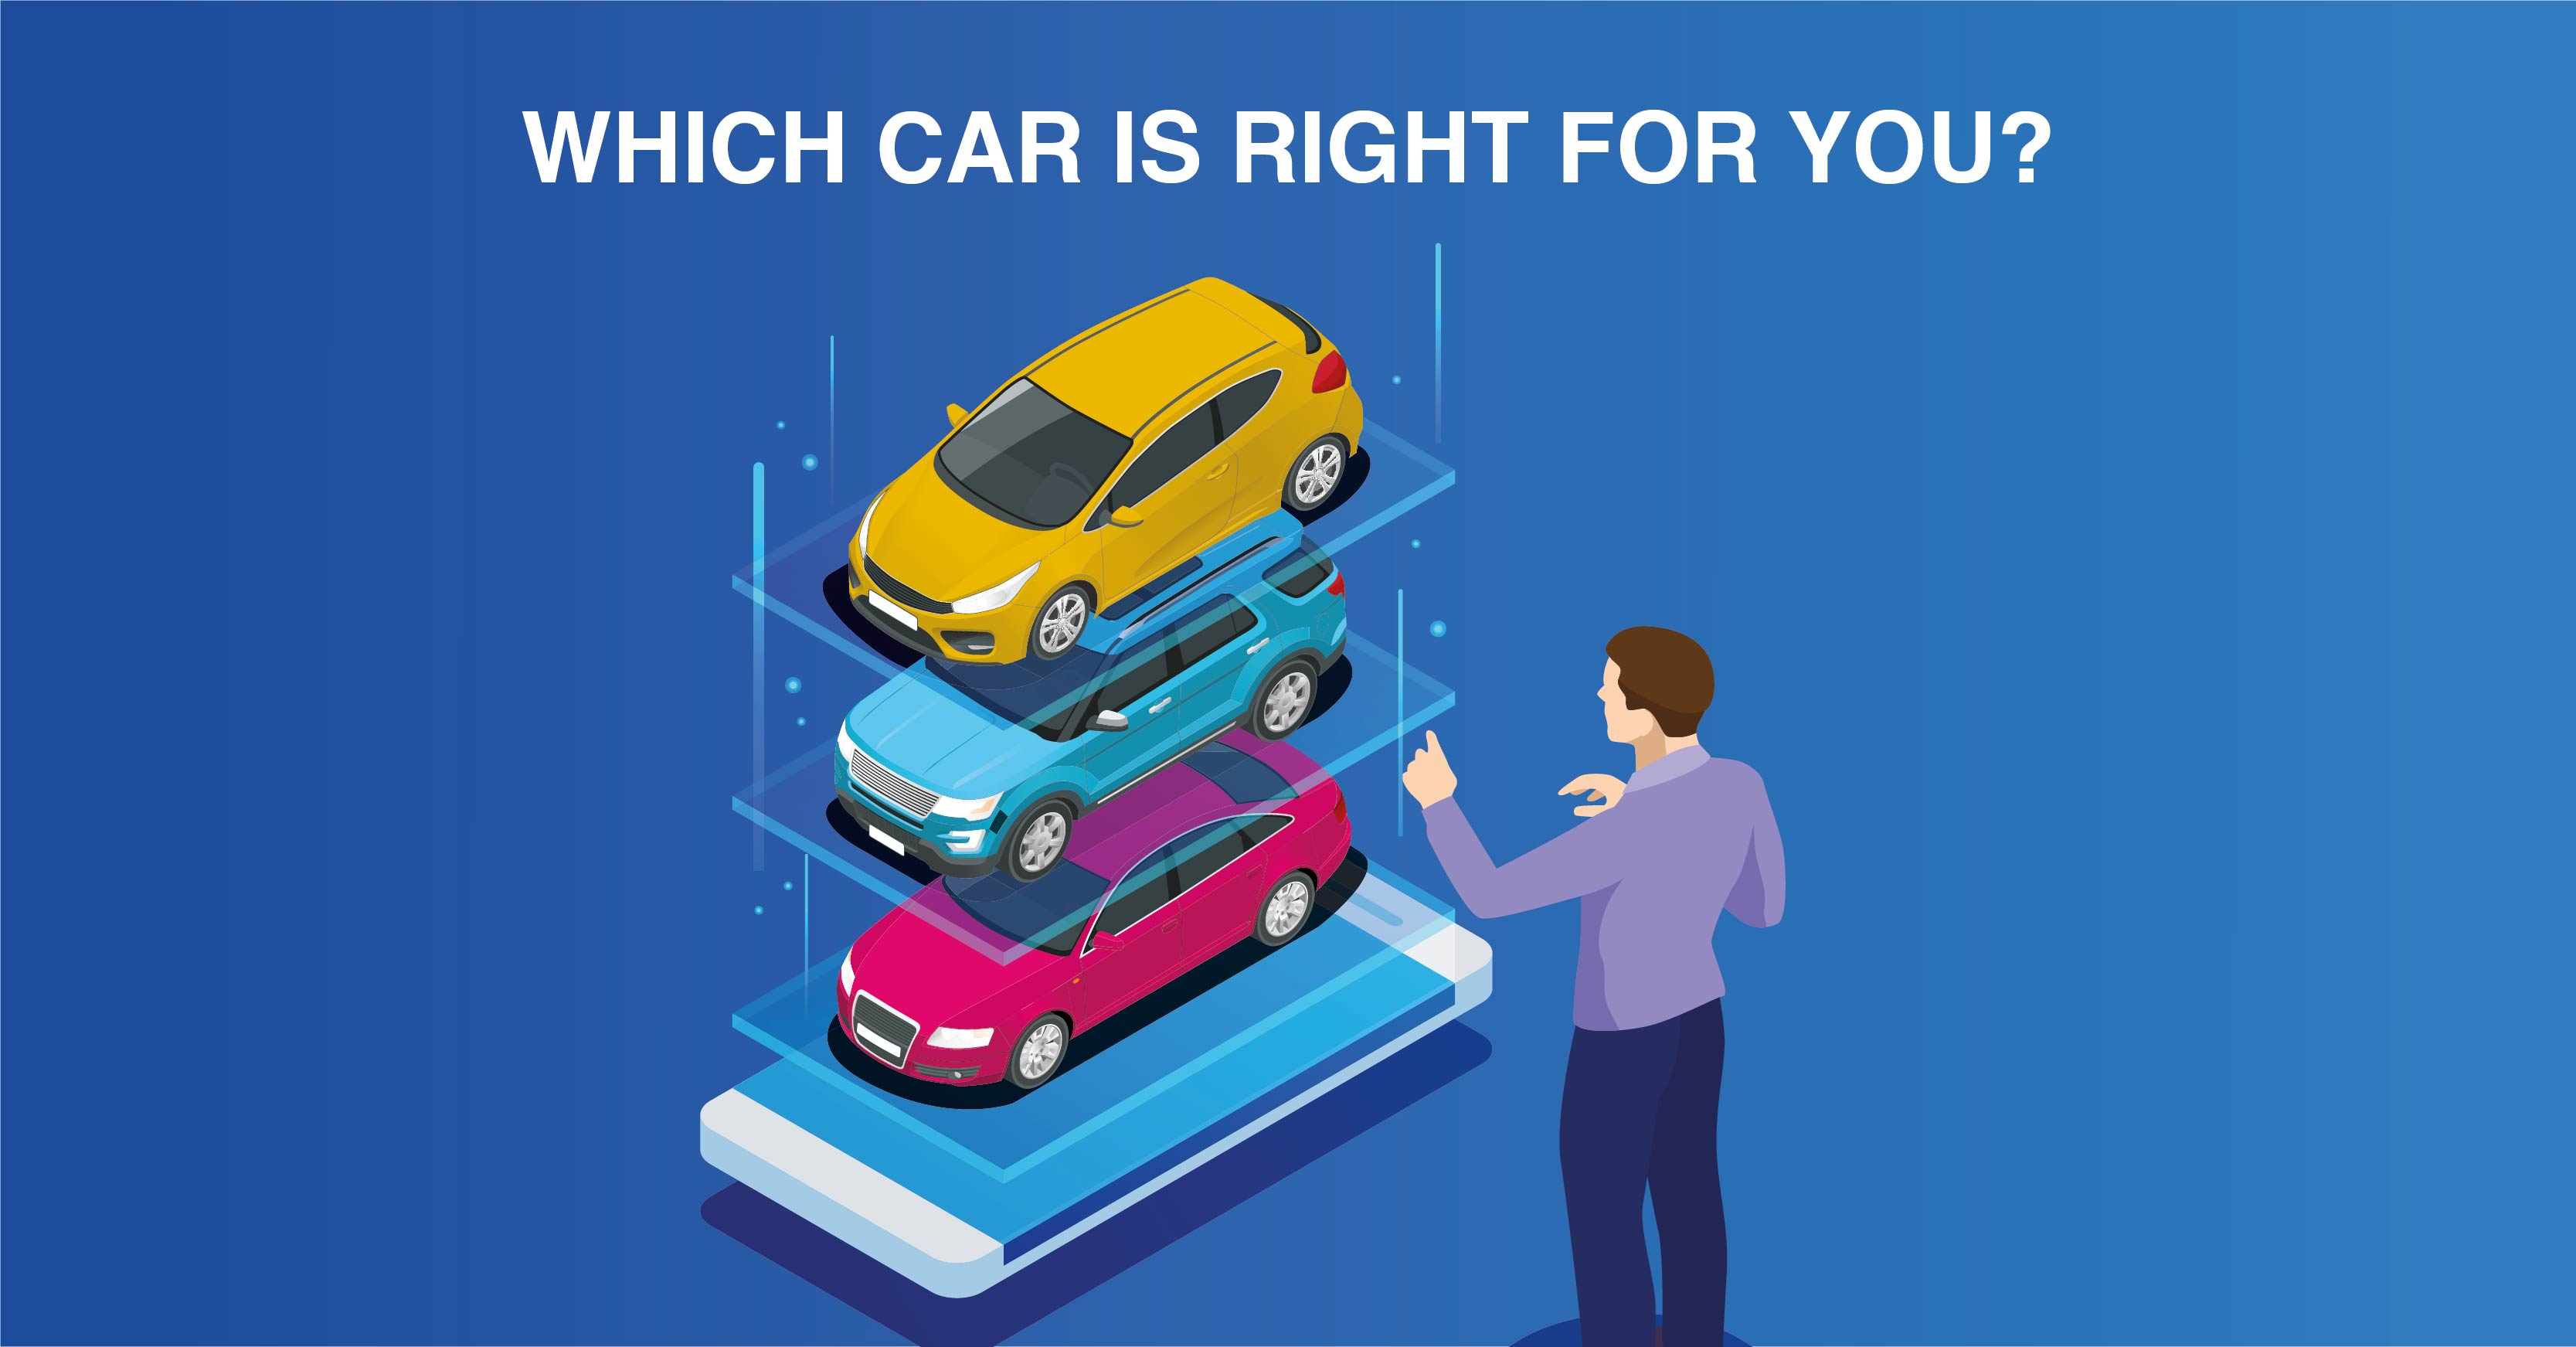 WHICH CAR IS RIGHT FOR YOU?